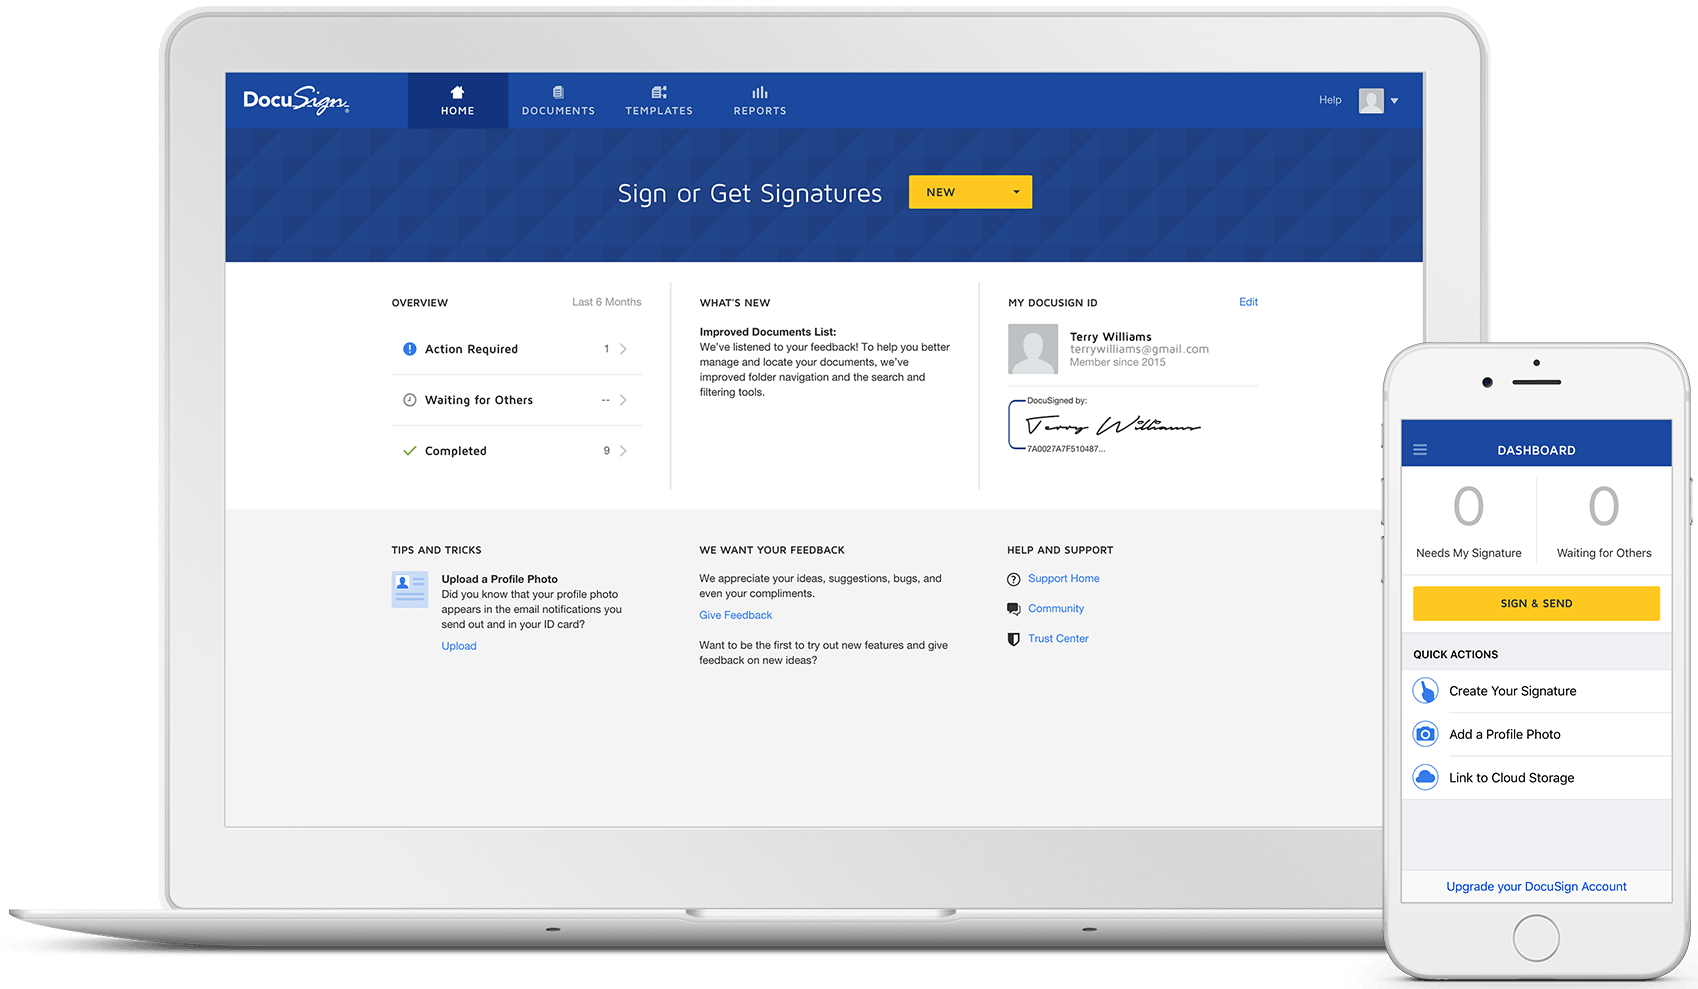 docusign dashboard